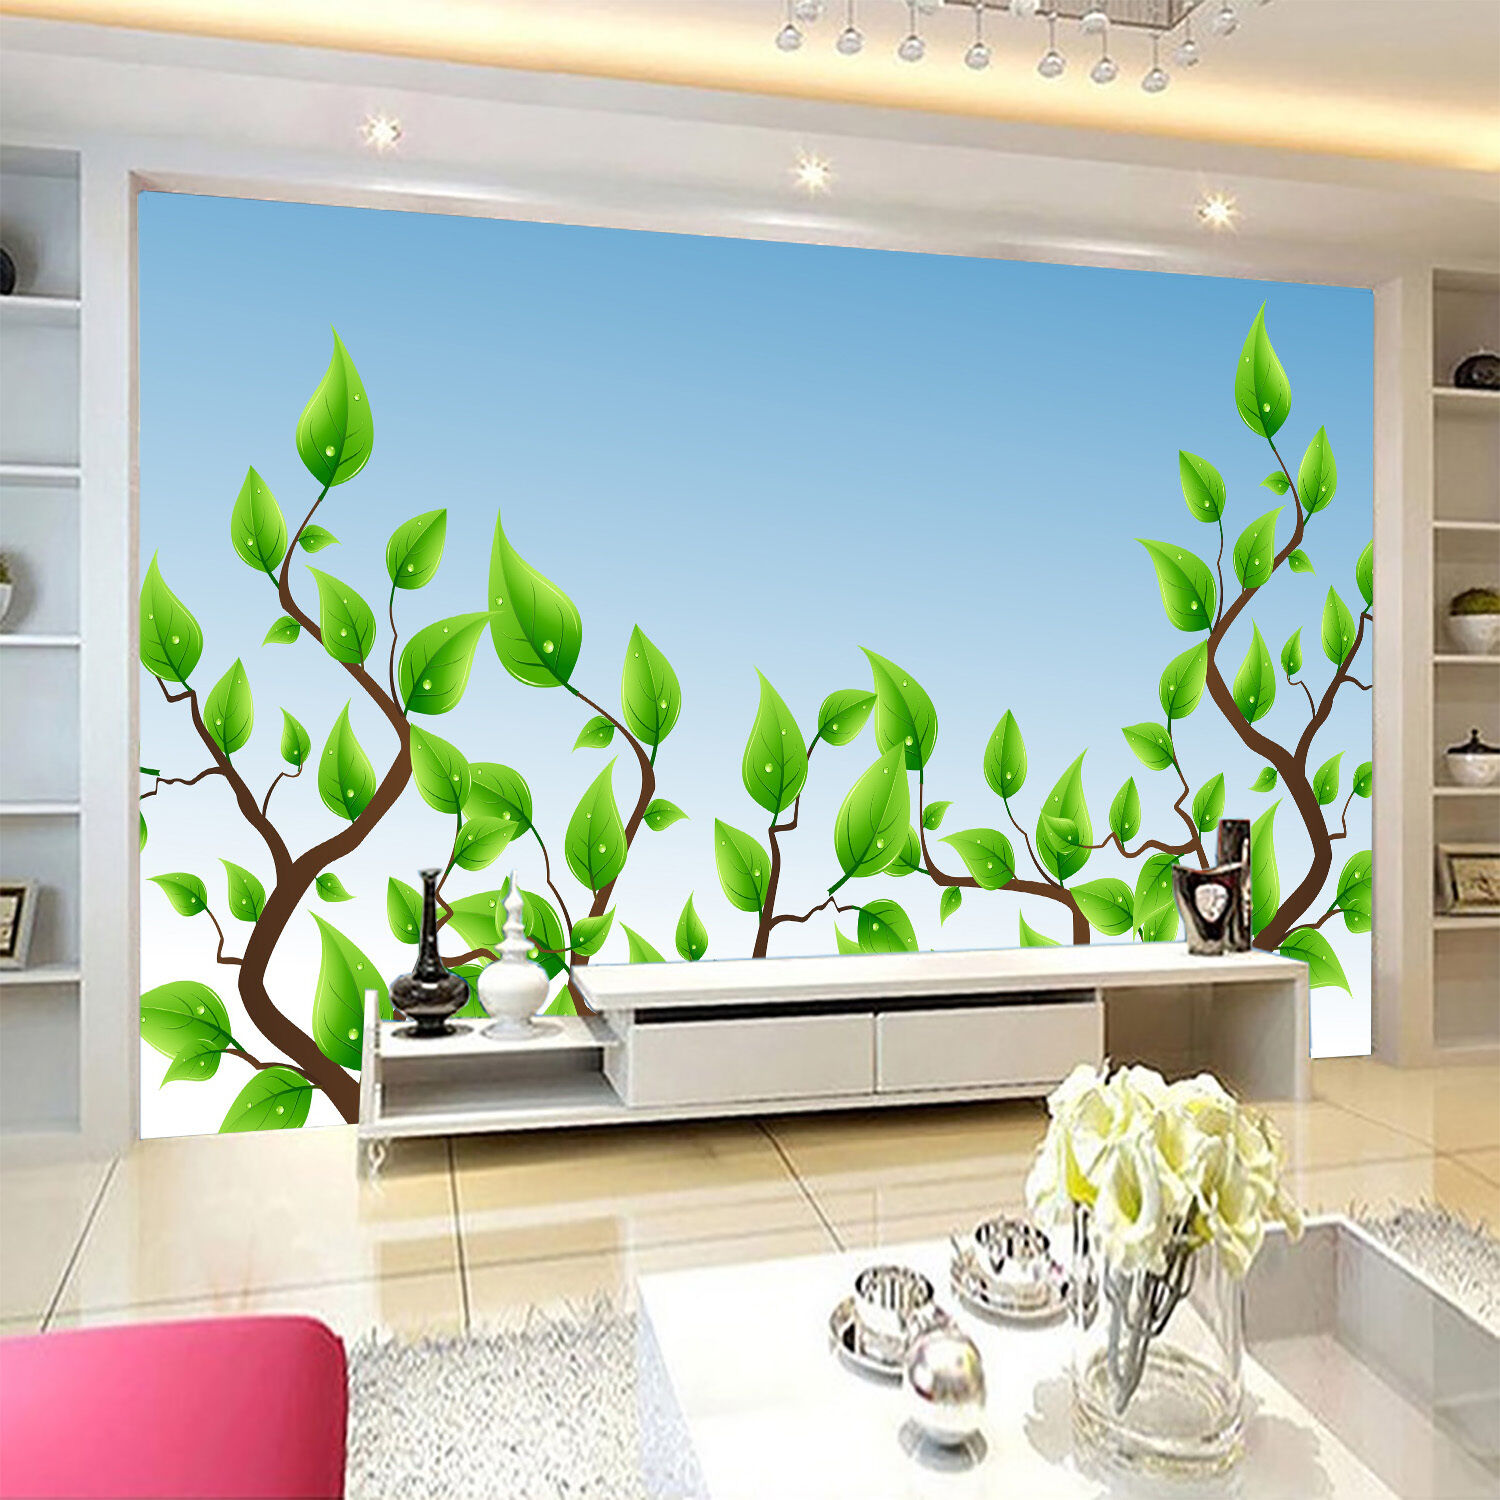 3D Green Vines Painted Wall Paper Murals Wall Print Decal Wall Deco AJ WALLPAPE